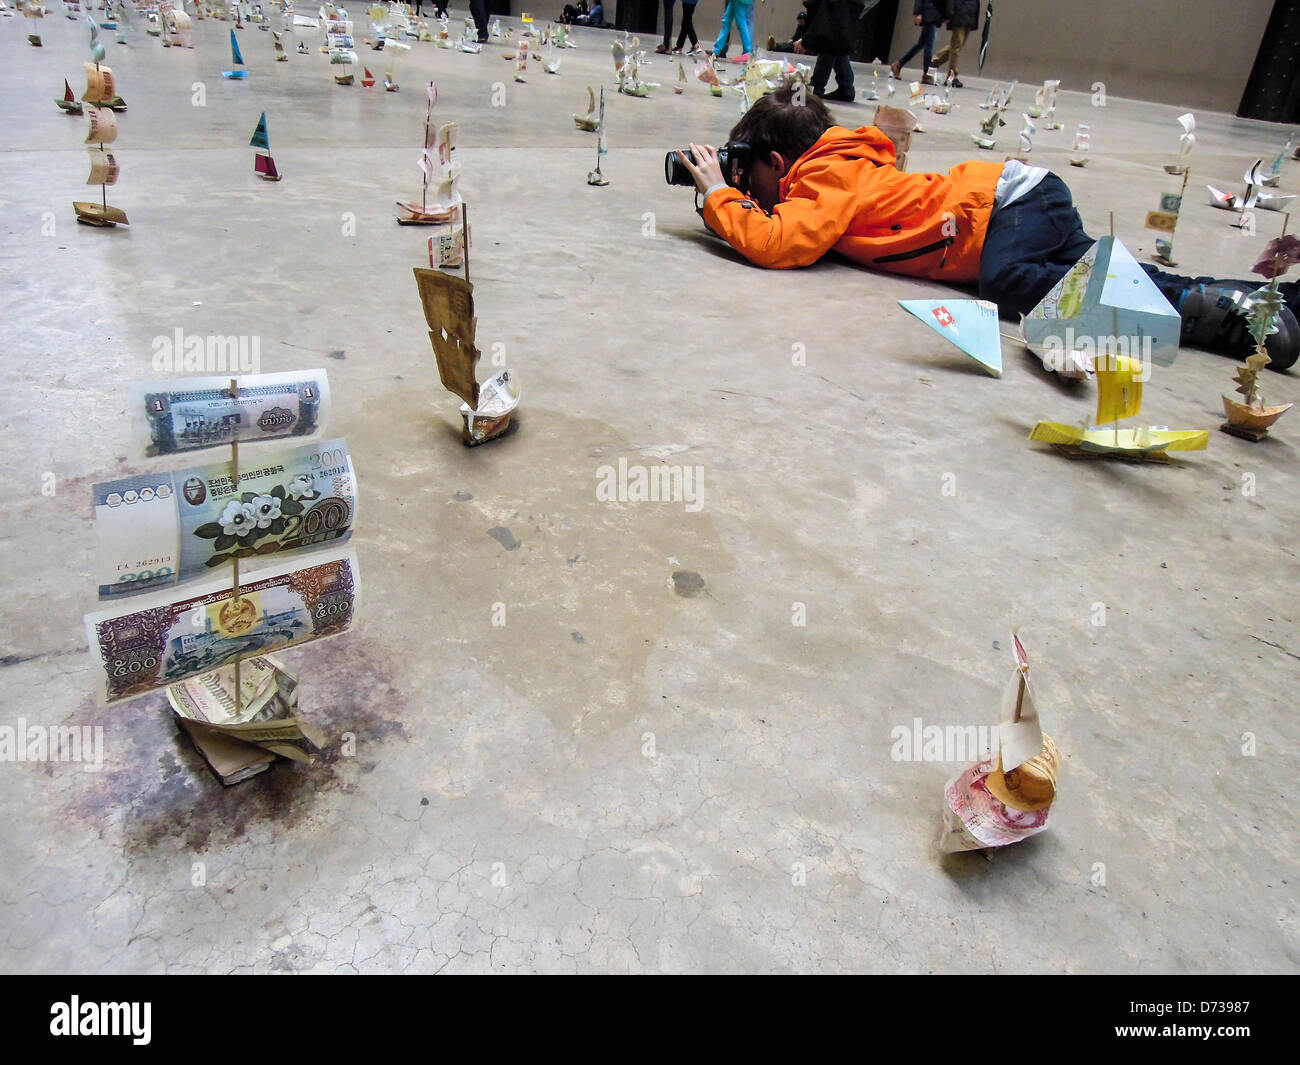 Susan Stockwell's Sail Away project at the Tate Modern as part of the series Hyperlink on 27th and 28th of April. - Stock Image